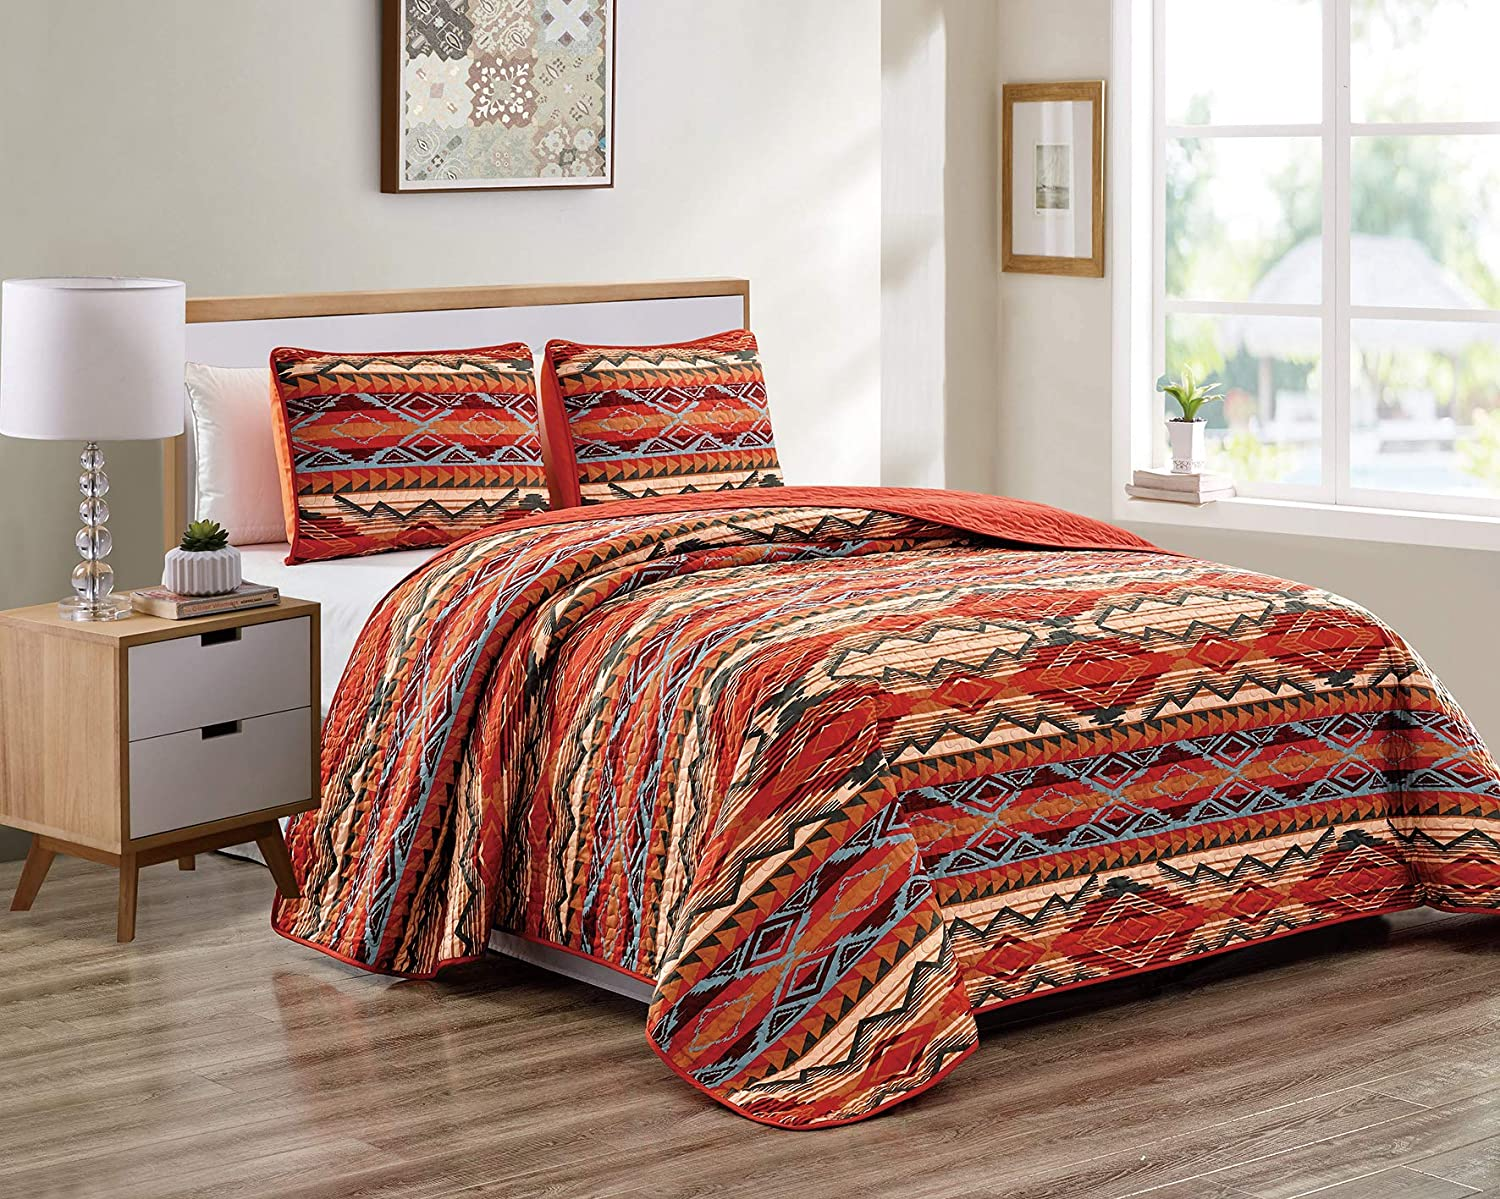 Rustic Western Native American Quilt Bedspread Coverlet Bedding Set in Modern Southwest Tribal Patterns in Soft Beige Brown Turquoise Blue Copper Burnt Orange & Rust Colors - Arizona (King/Cal-King)